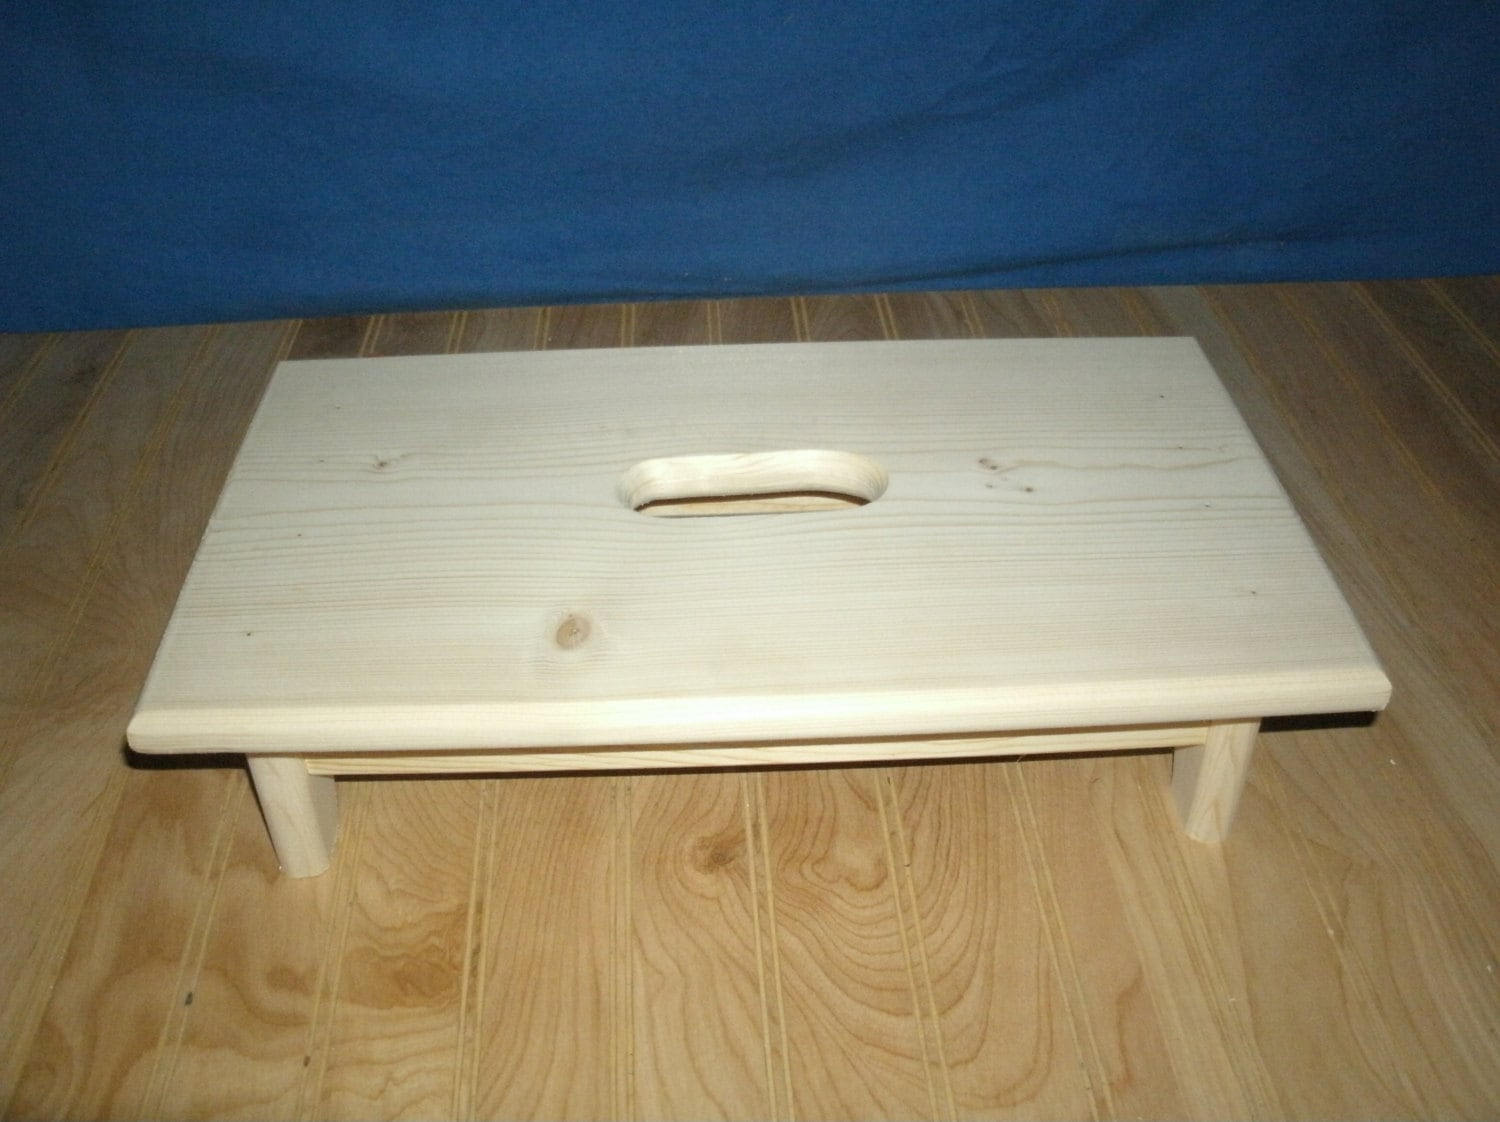 Wood Step Stool Wooden Step Stool 4 With Hand Hole